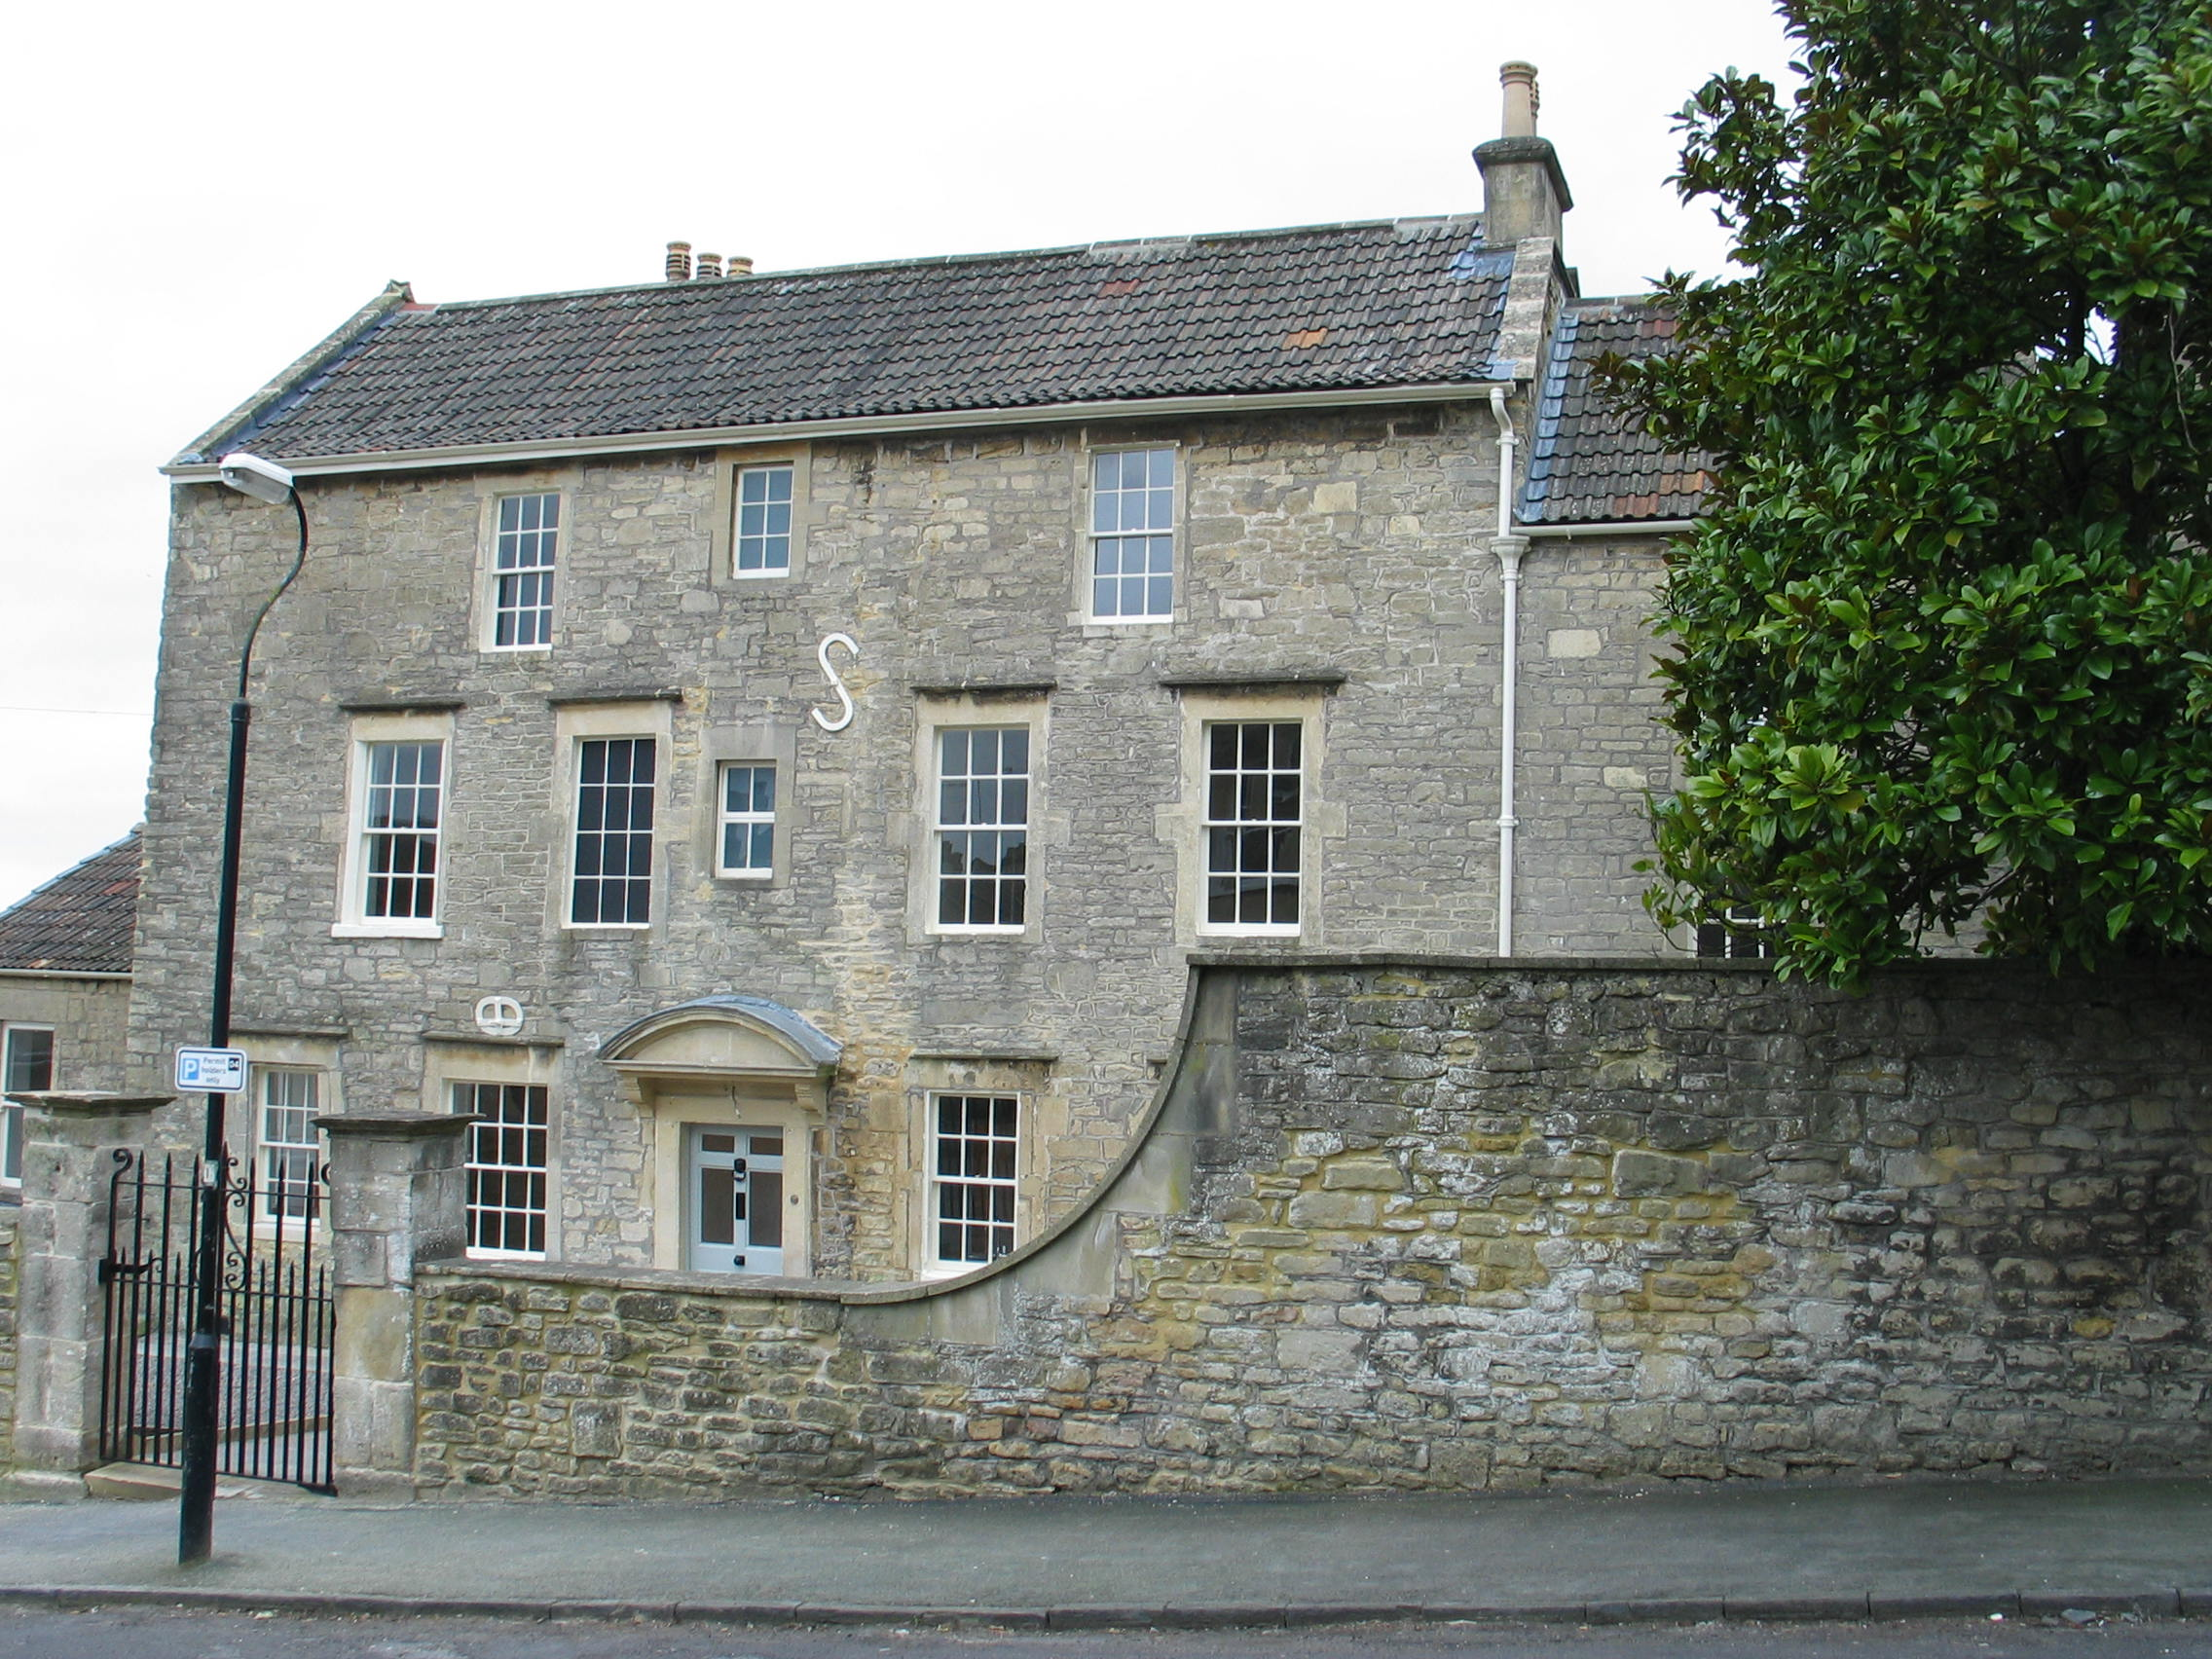 COMPLETE REFURBISHMENT + NEW BUILD ADDITIONS, MAGDALEN HOUSE, GRADE II LISTED, BATH, UK